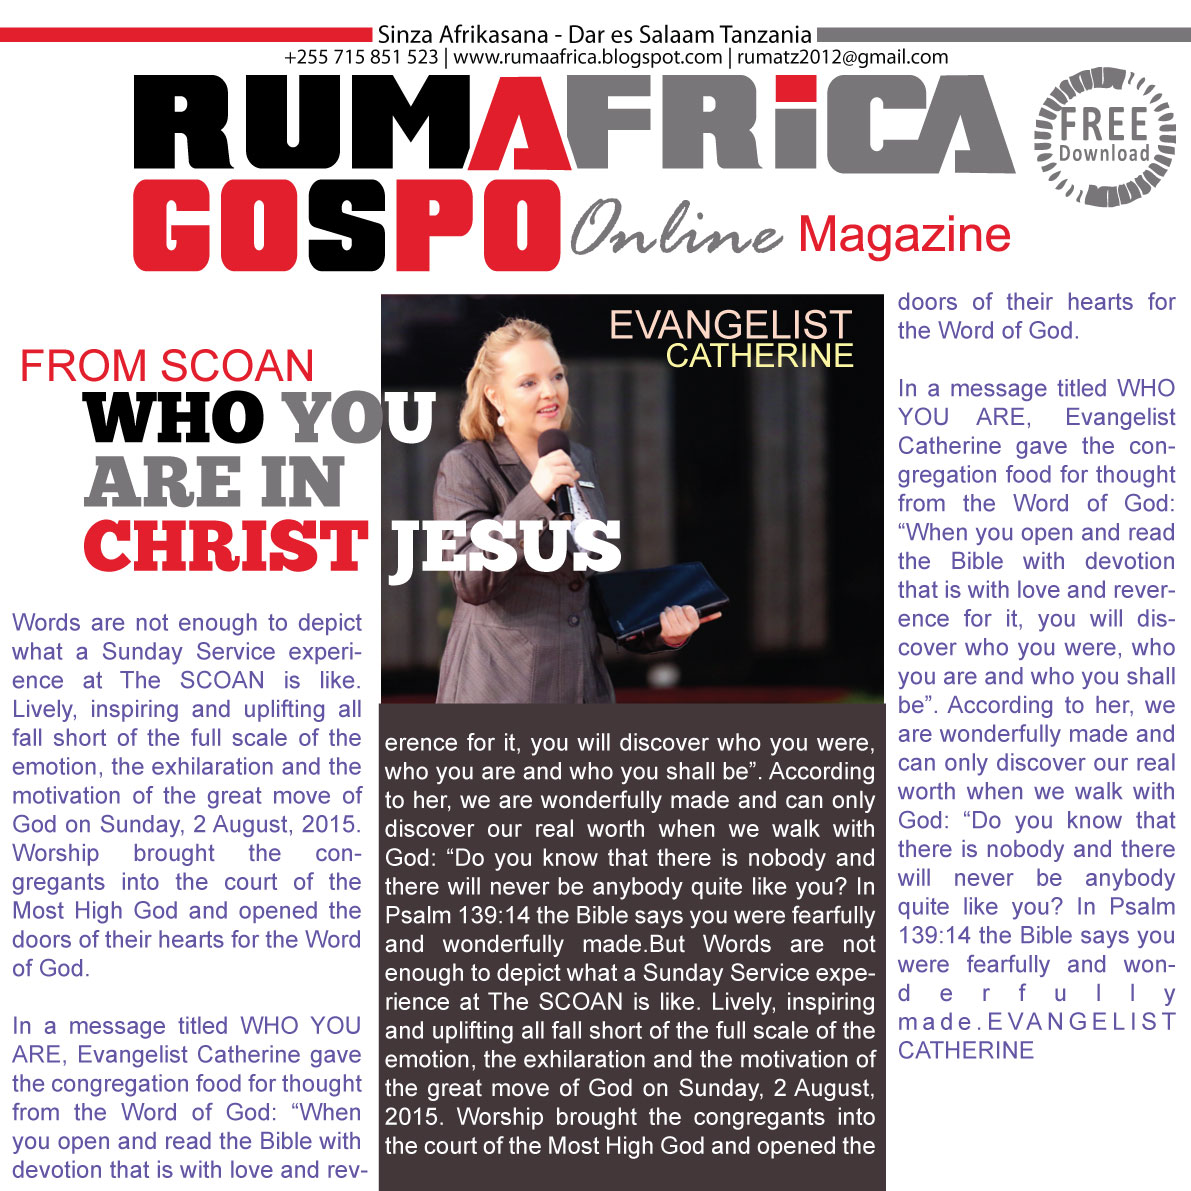 FROM SCOAN: WHO YOU ARE IN CHRIST JESUS